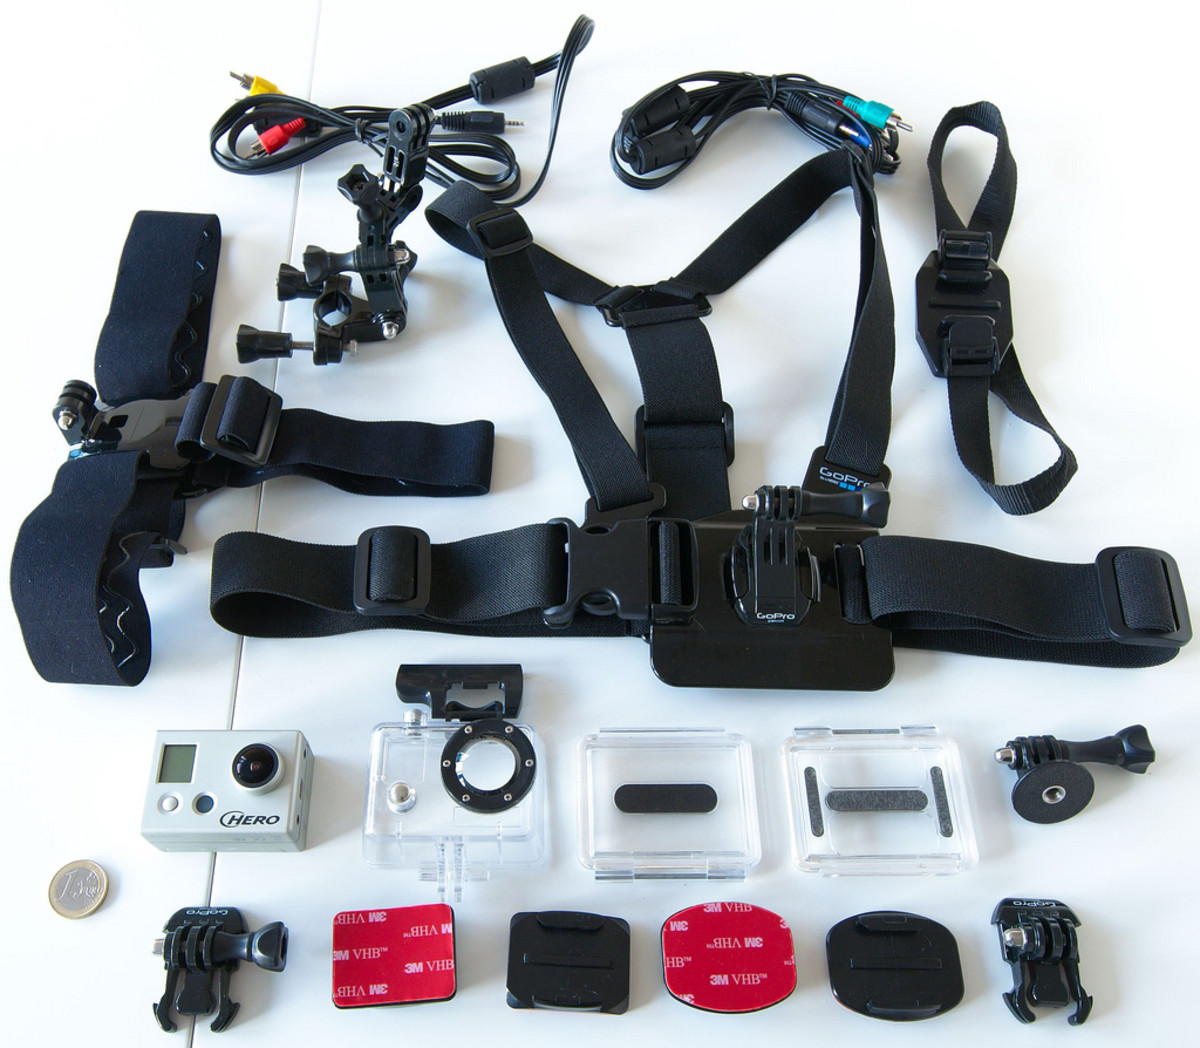 An accessory kit is a great gift for an active guy who already owns an action camera.